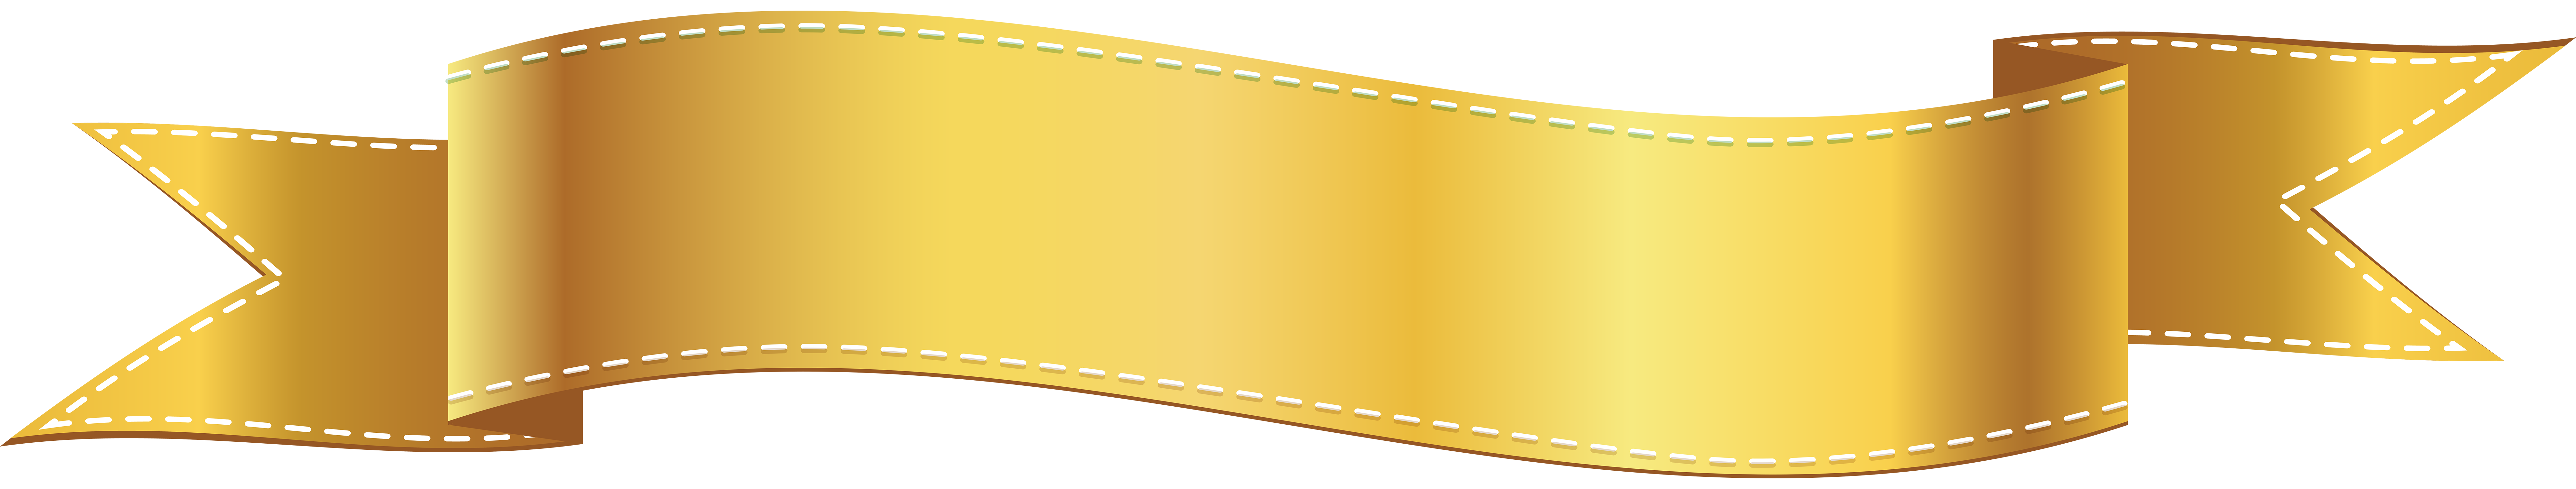 Png ribbon. Gold banner cyberuse golden